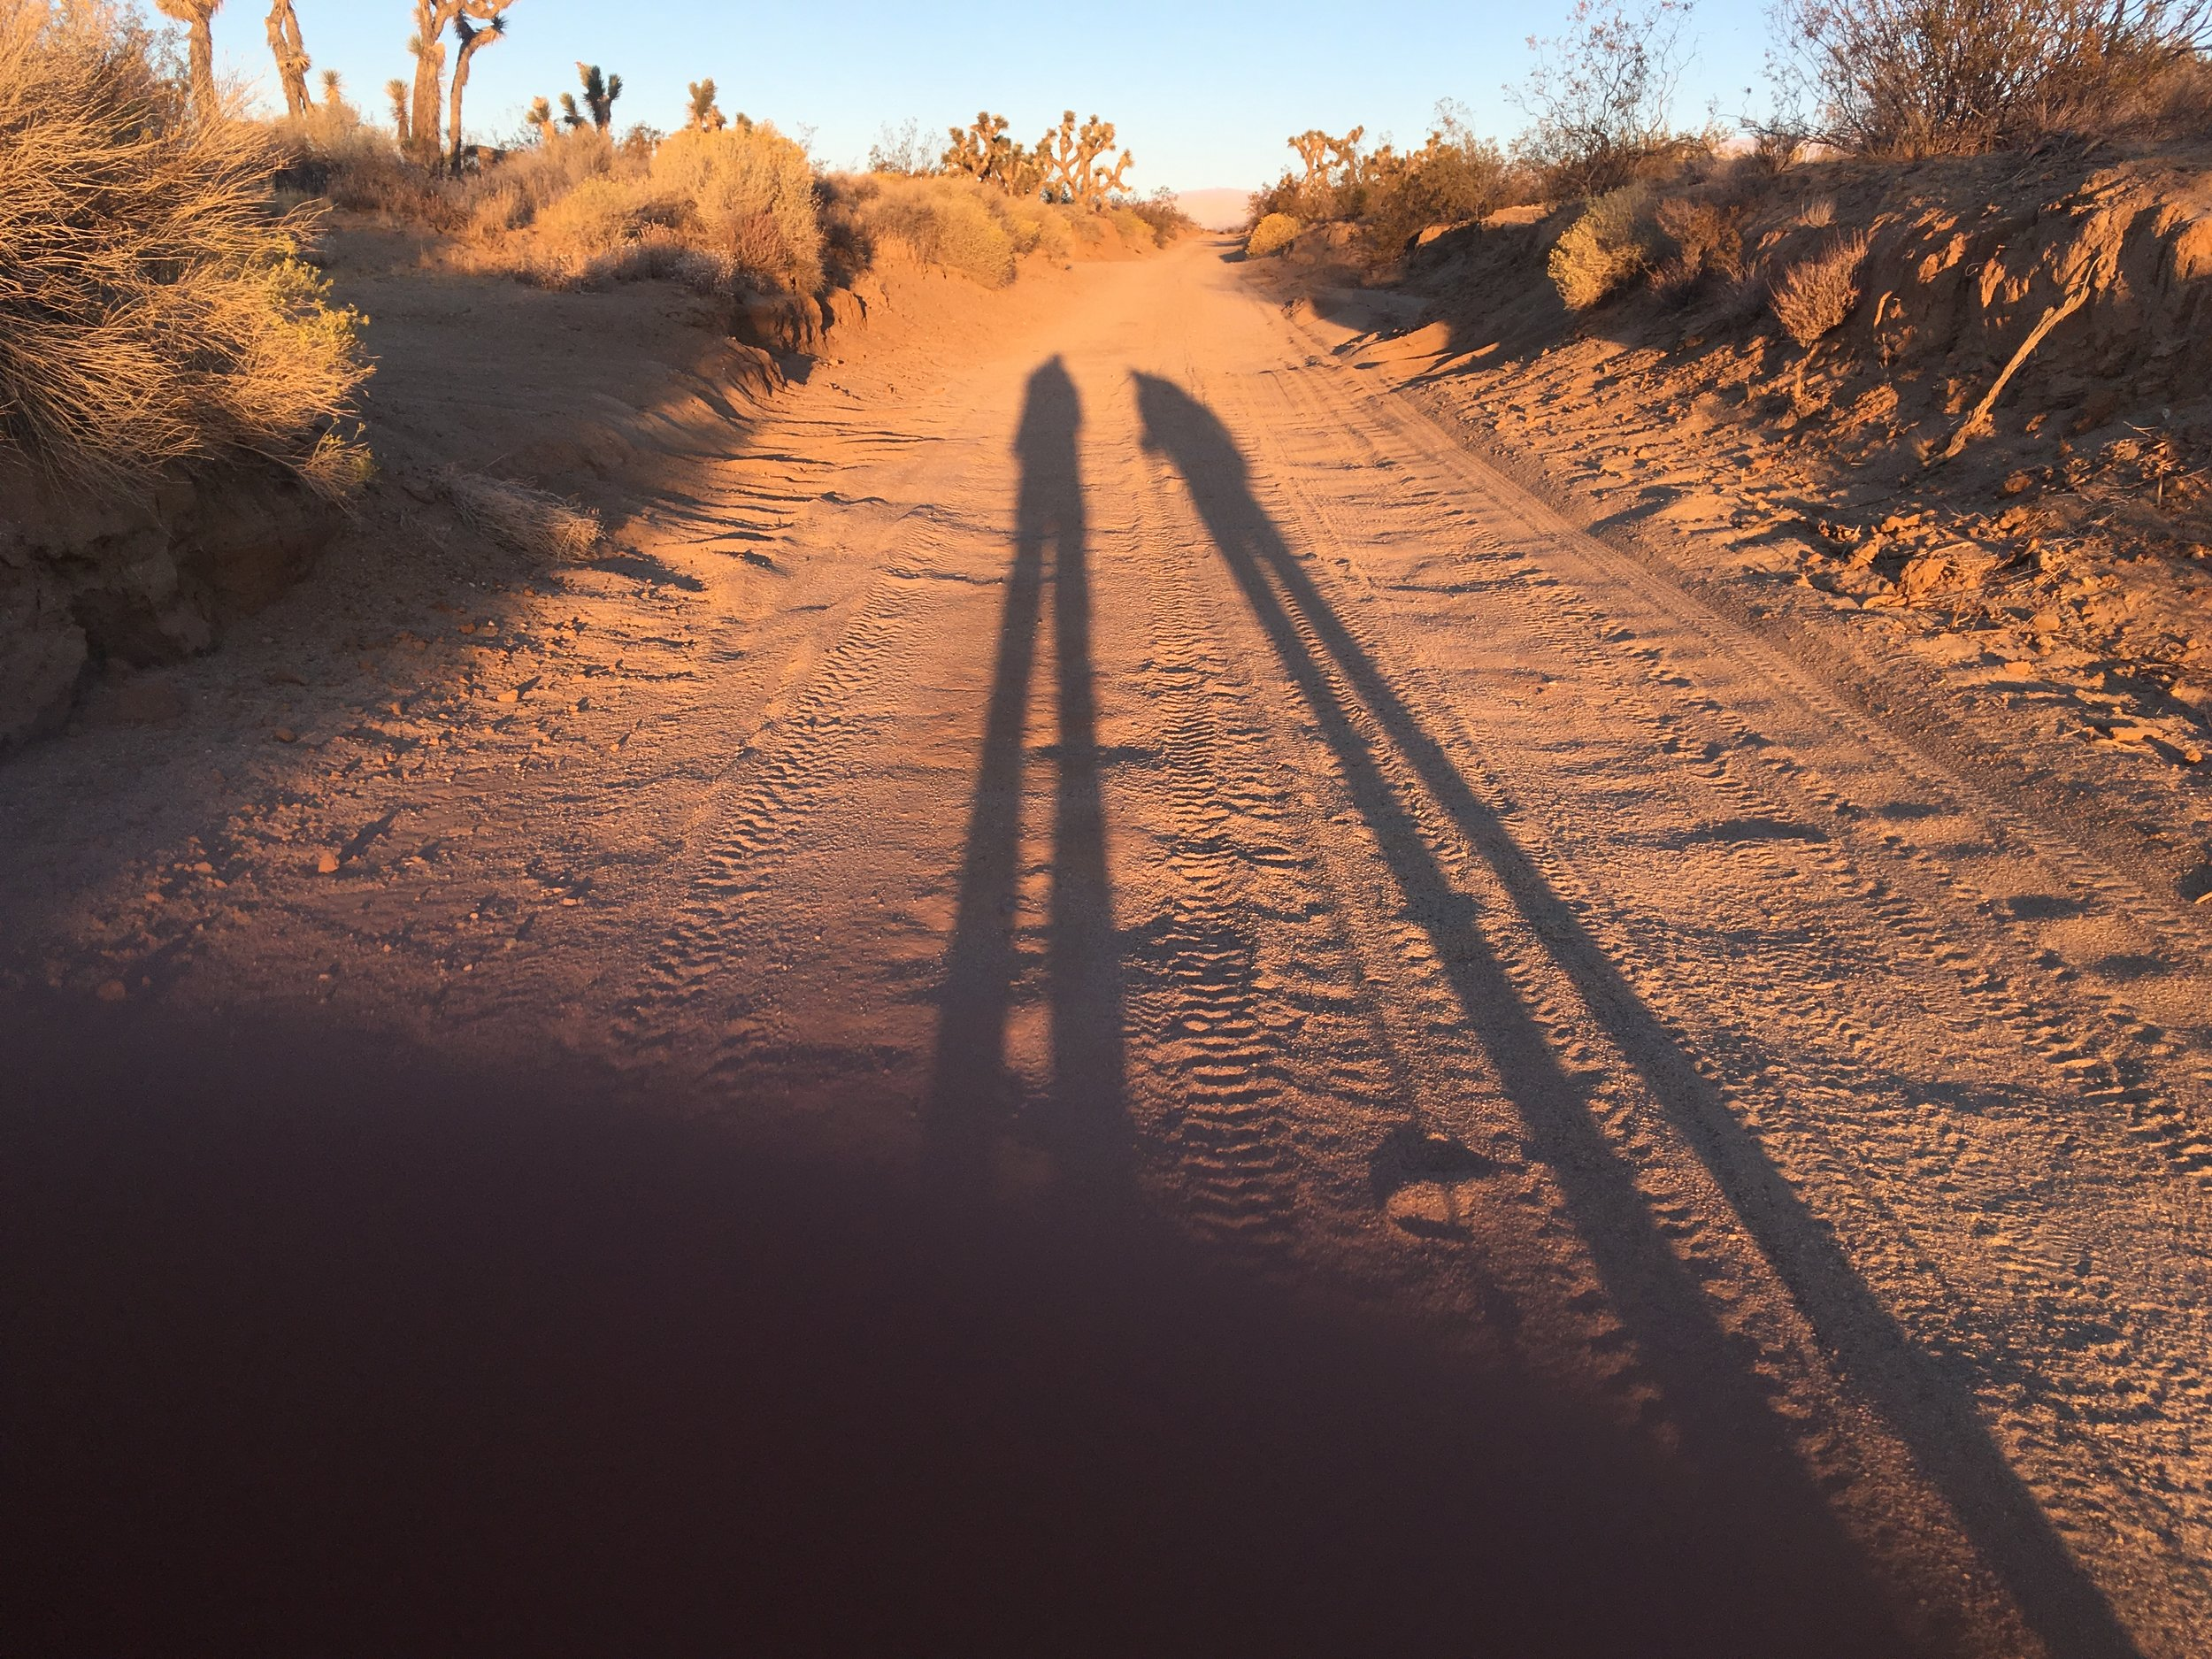 Shadowgram capturing our dawn hiking in the desert.